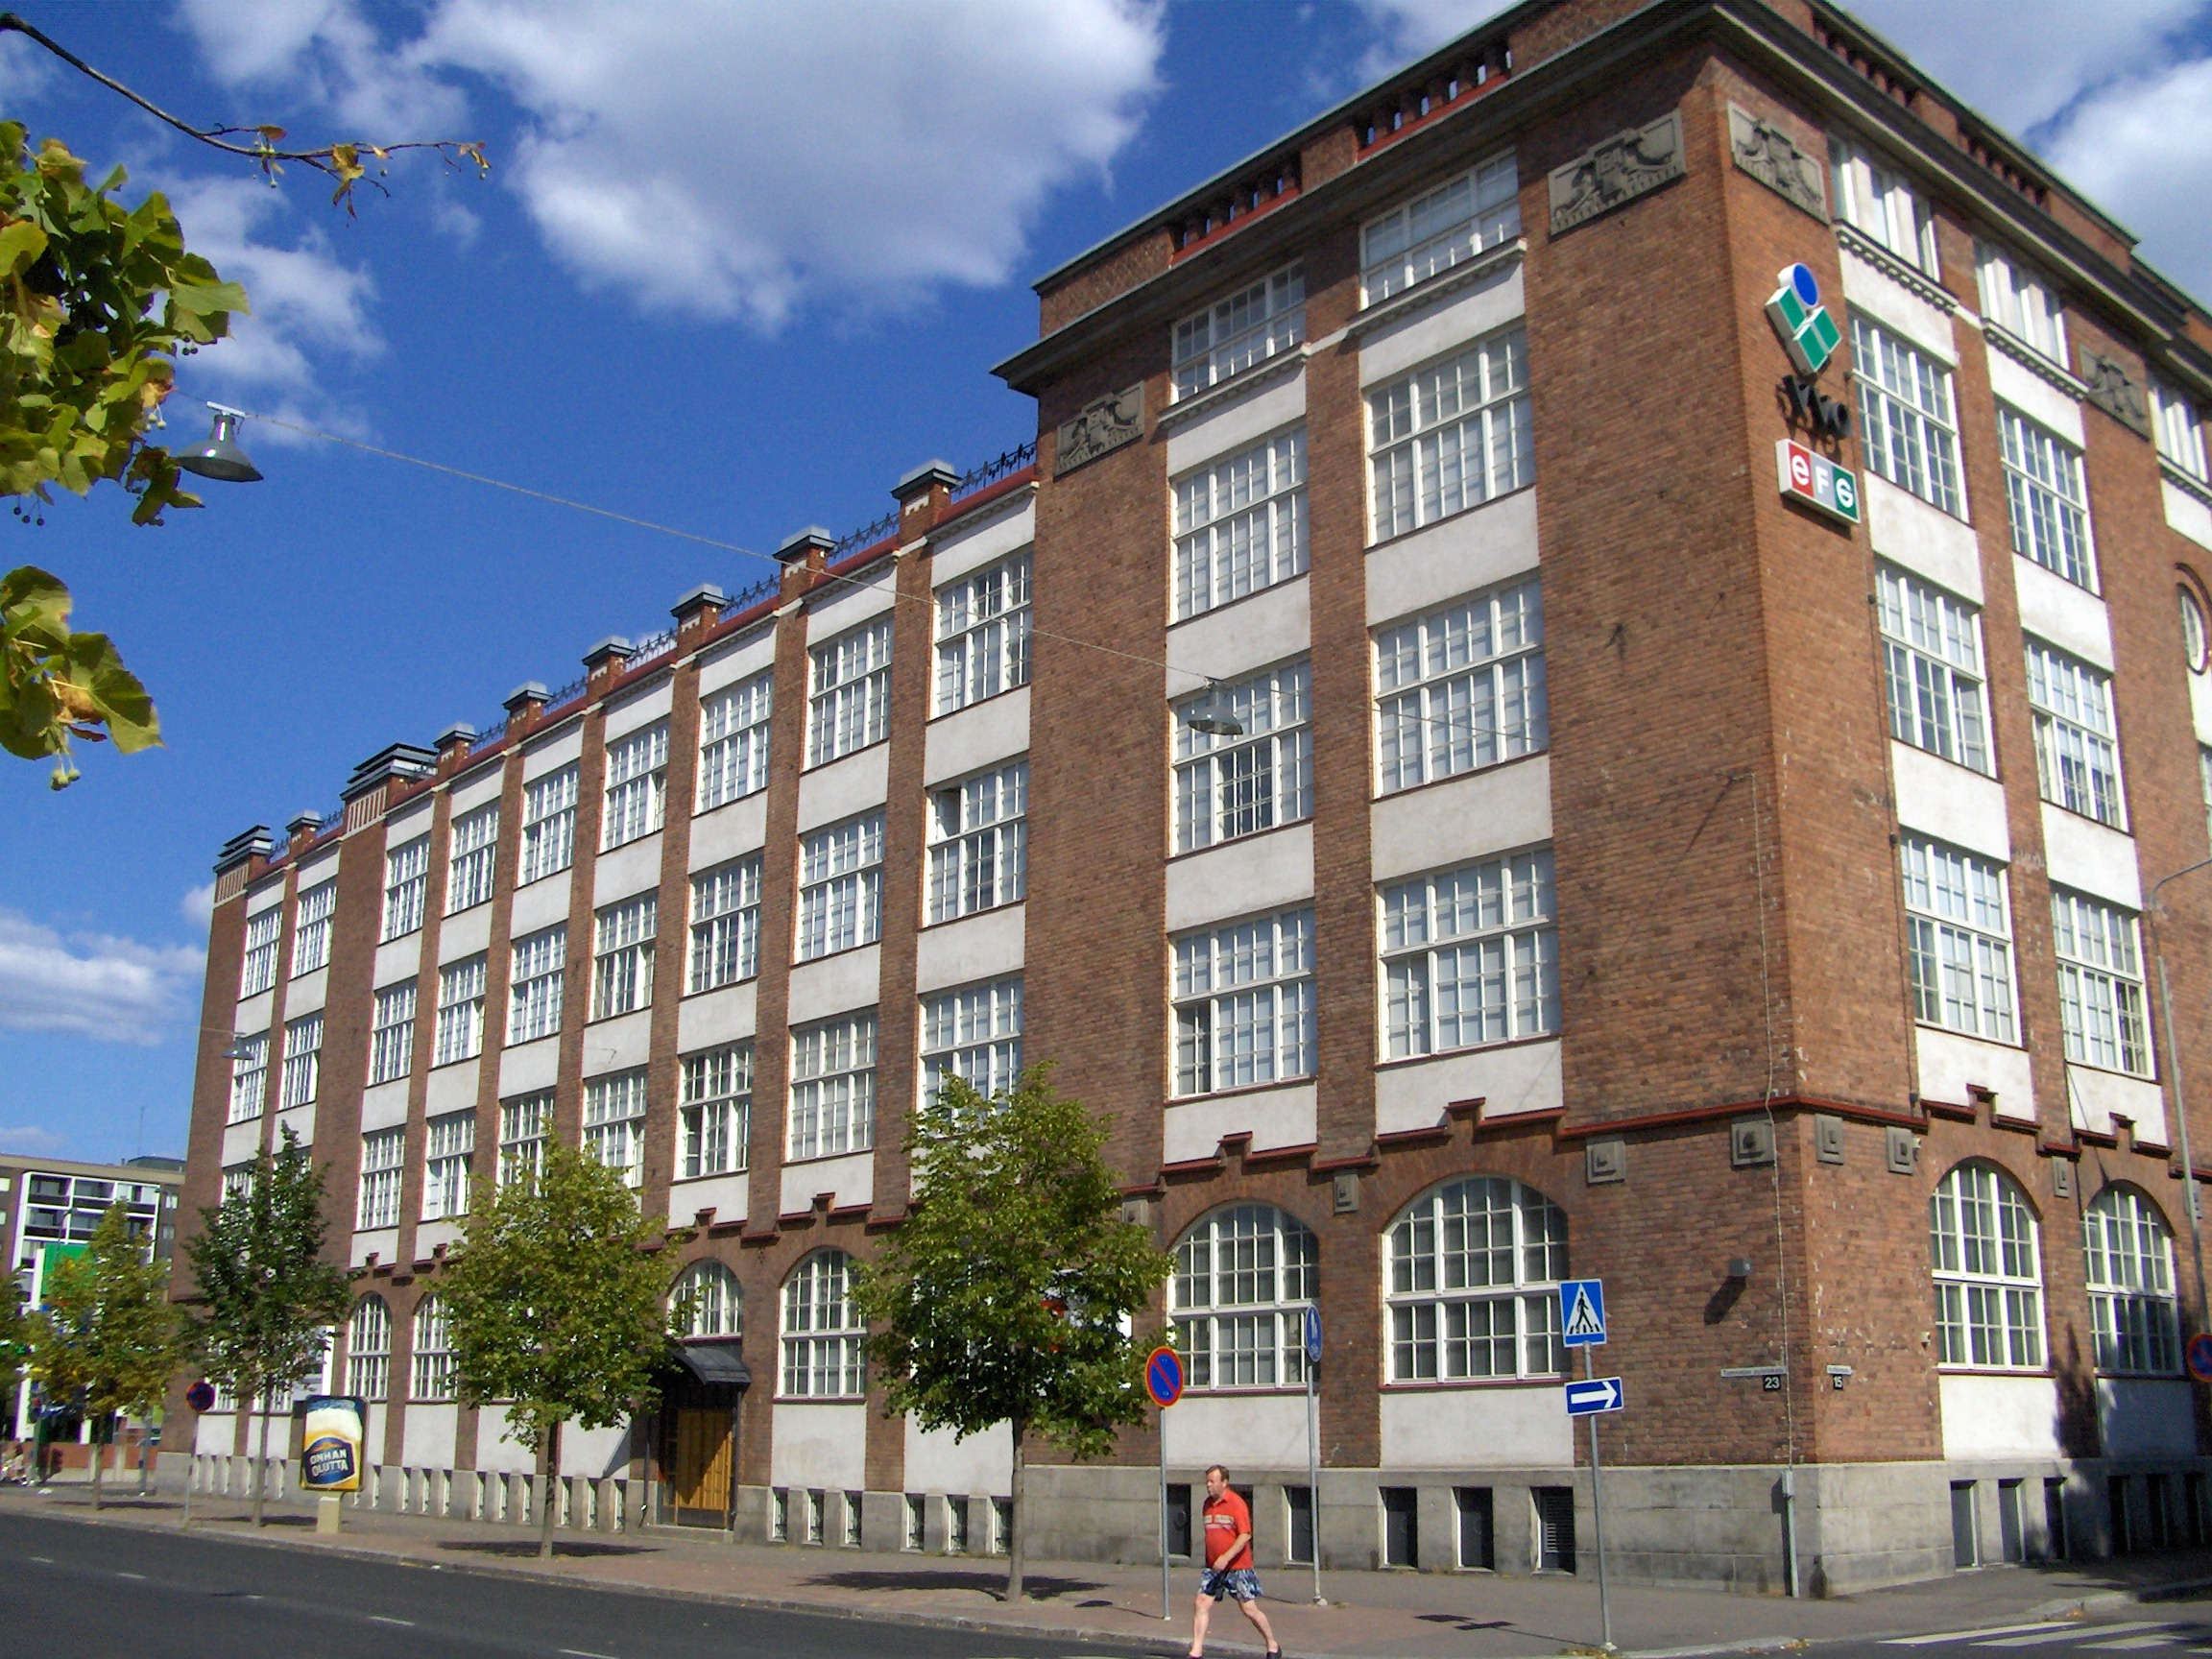 File:Aaltosentehdas factory1.jpg - Wikimedia Commons